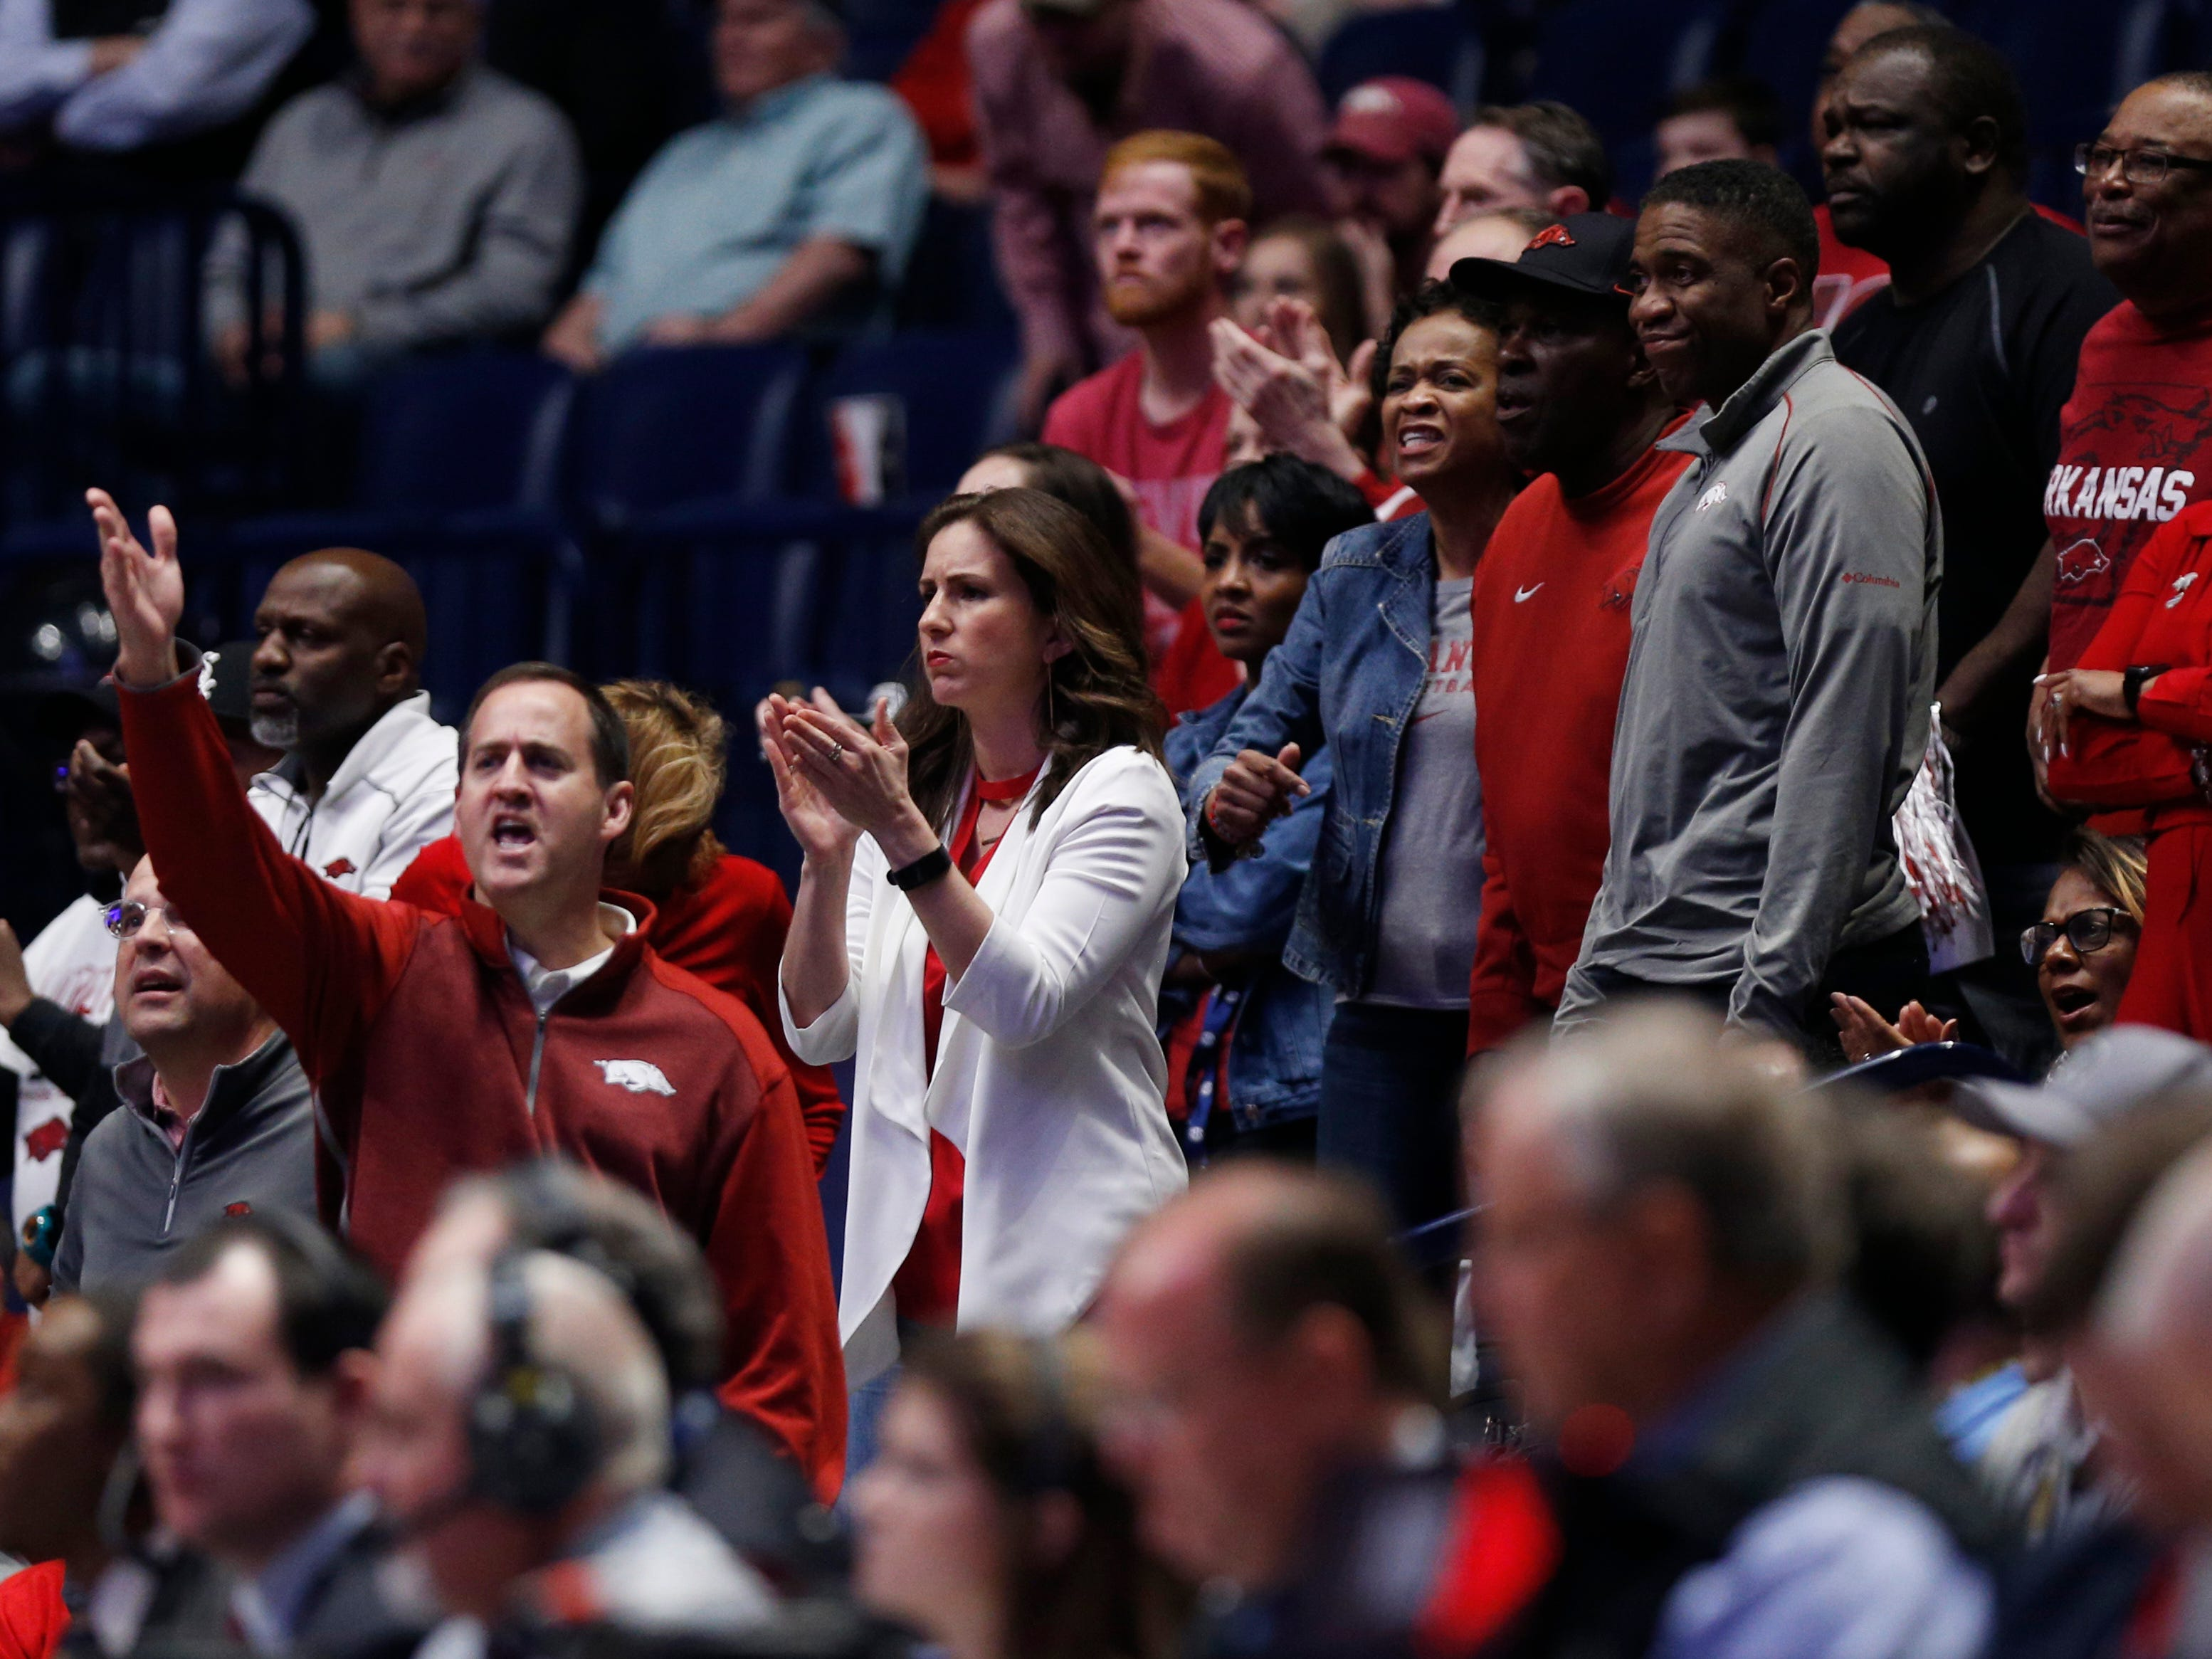 Arkansas fans watch the second half of the SEC Men's Basketball Tournament game at Bridgestone Arena in Nashville, Tenn., Thursday, March 14, 2019.